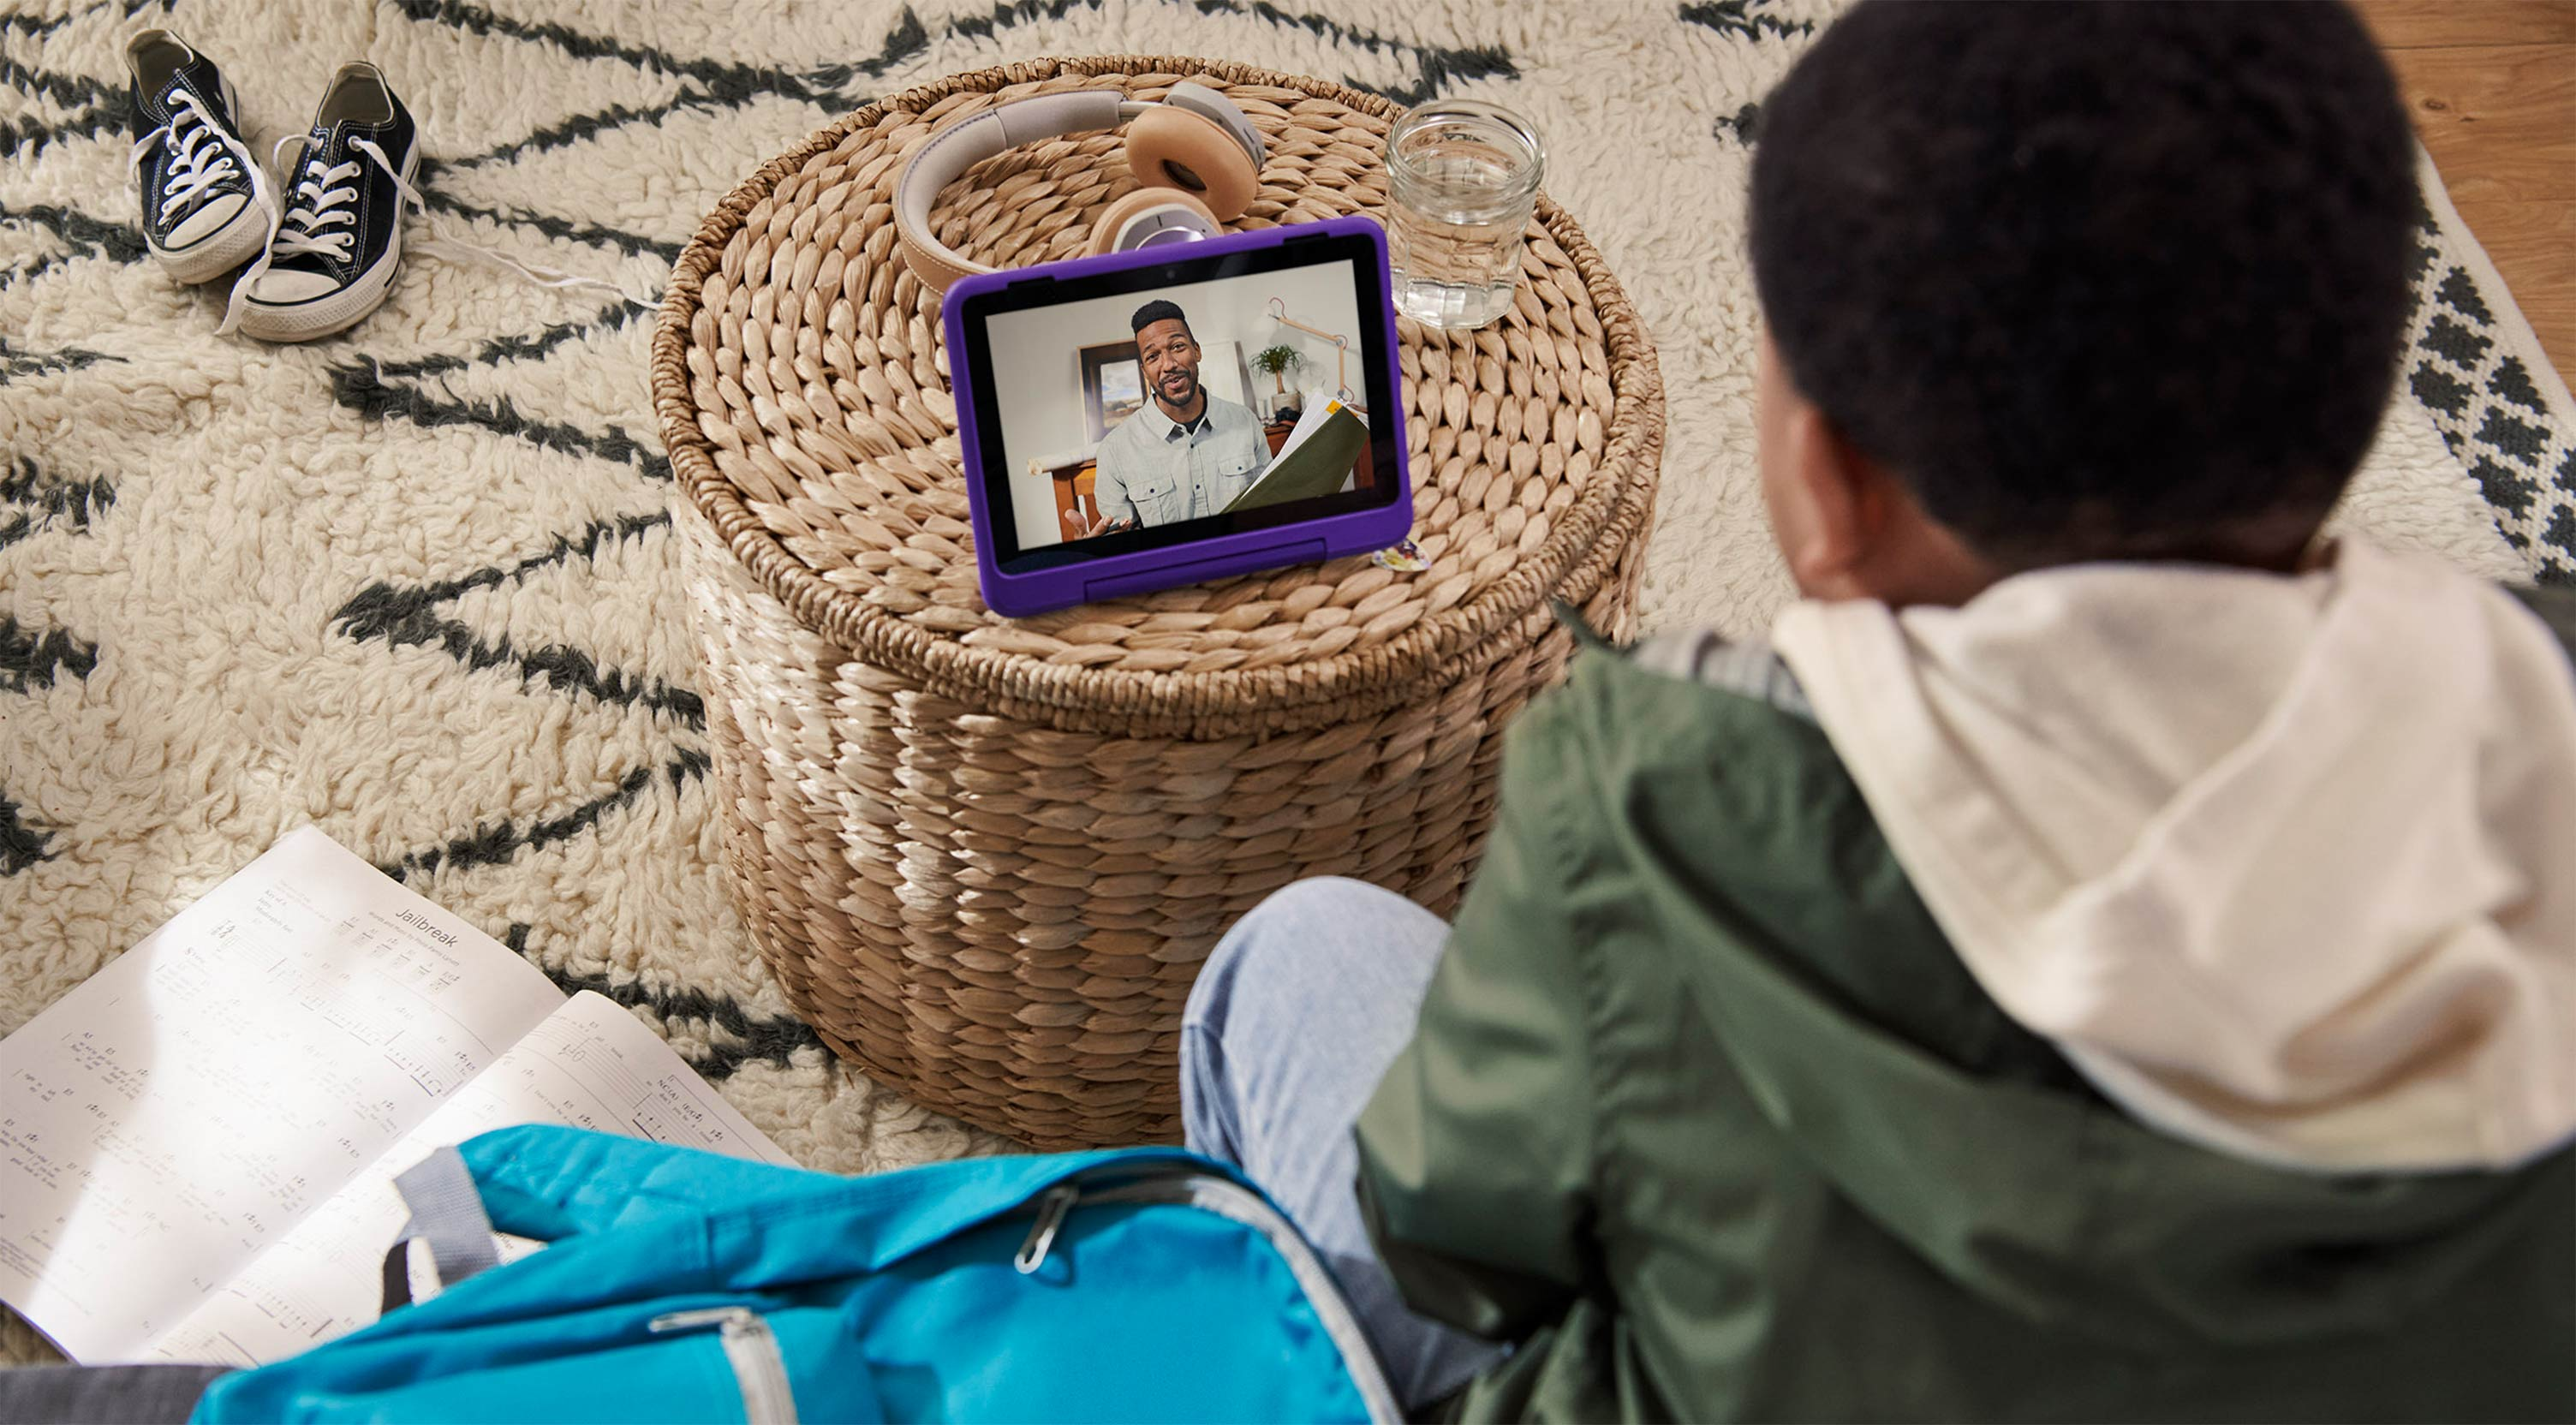 Male child seated on floor engaged in video call with adult via tablet.